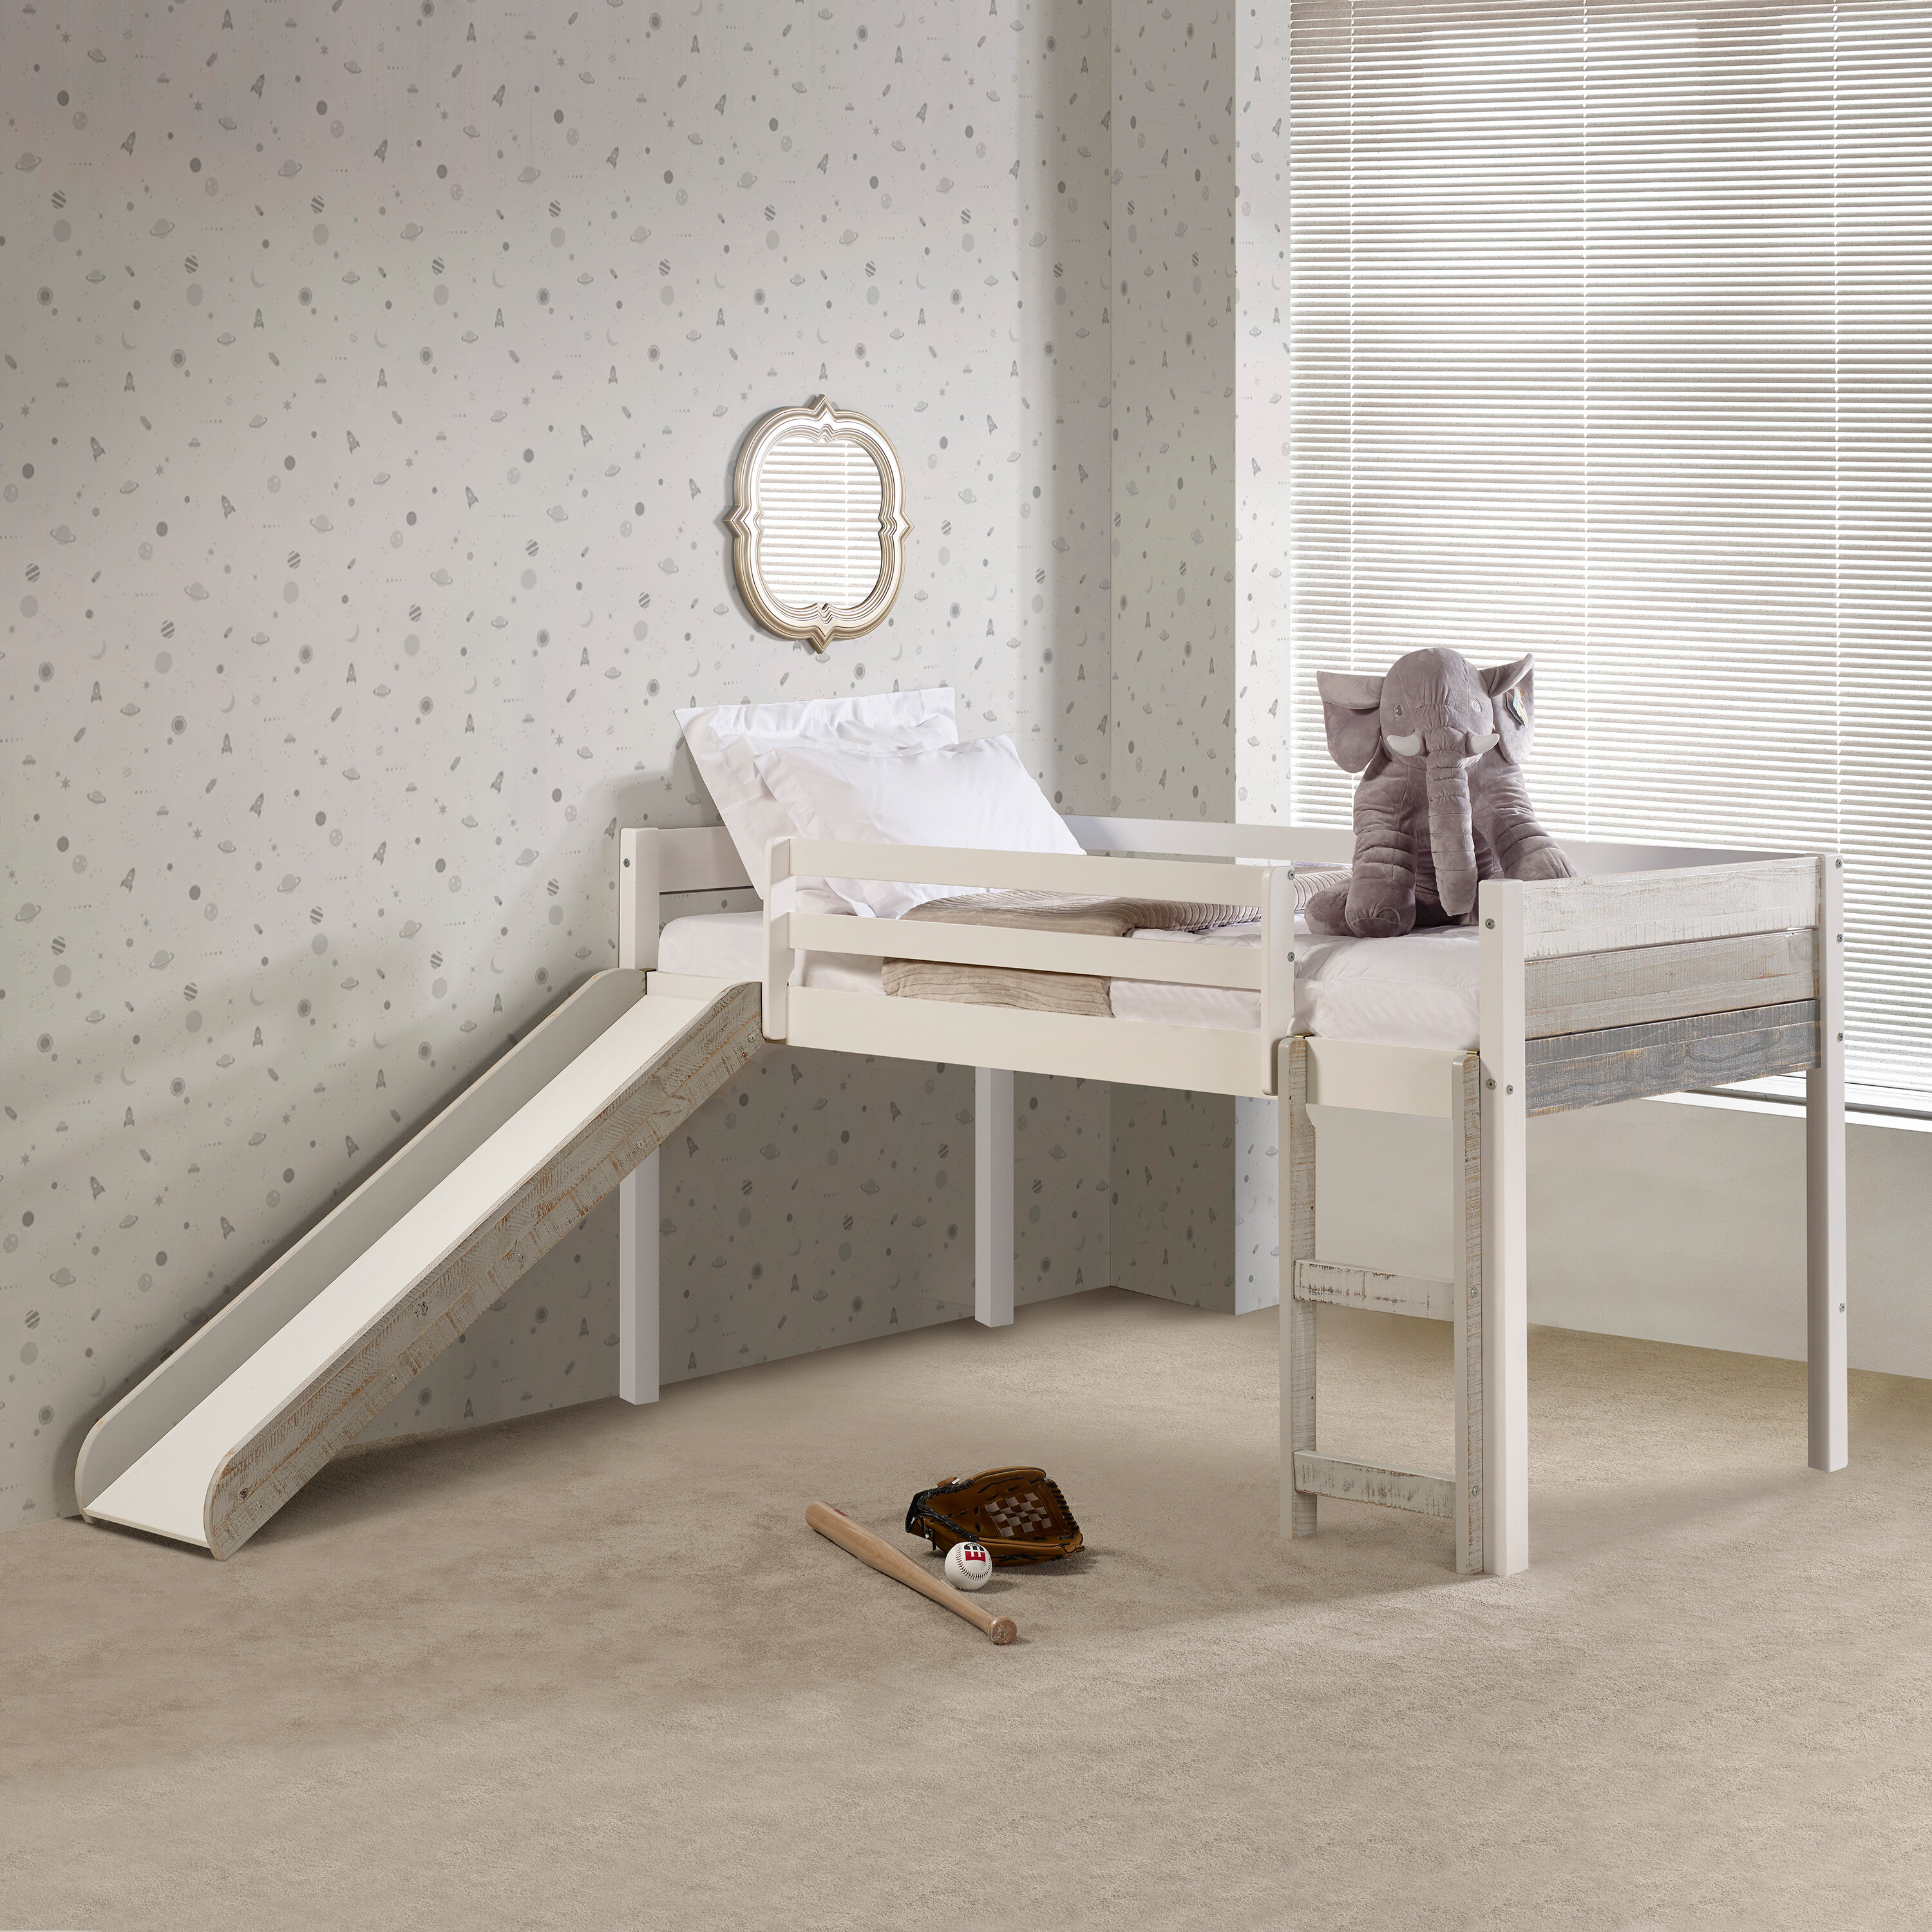 Isabelle Max Fuller Two Tone Twin Low Loft Bed Wayfair